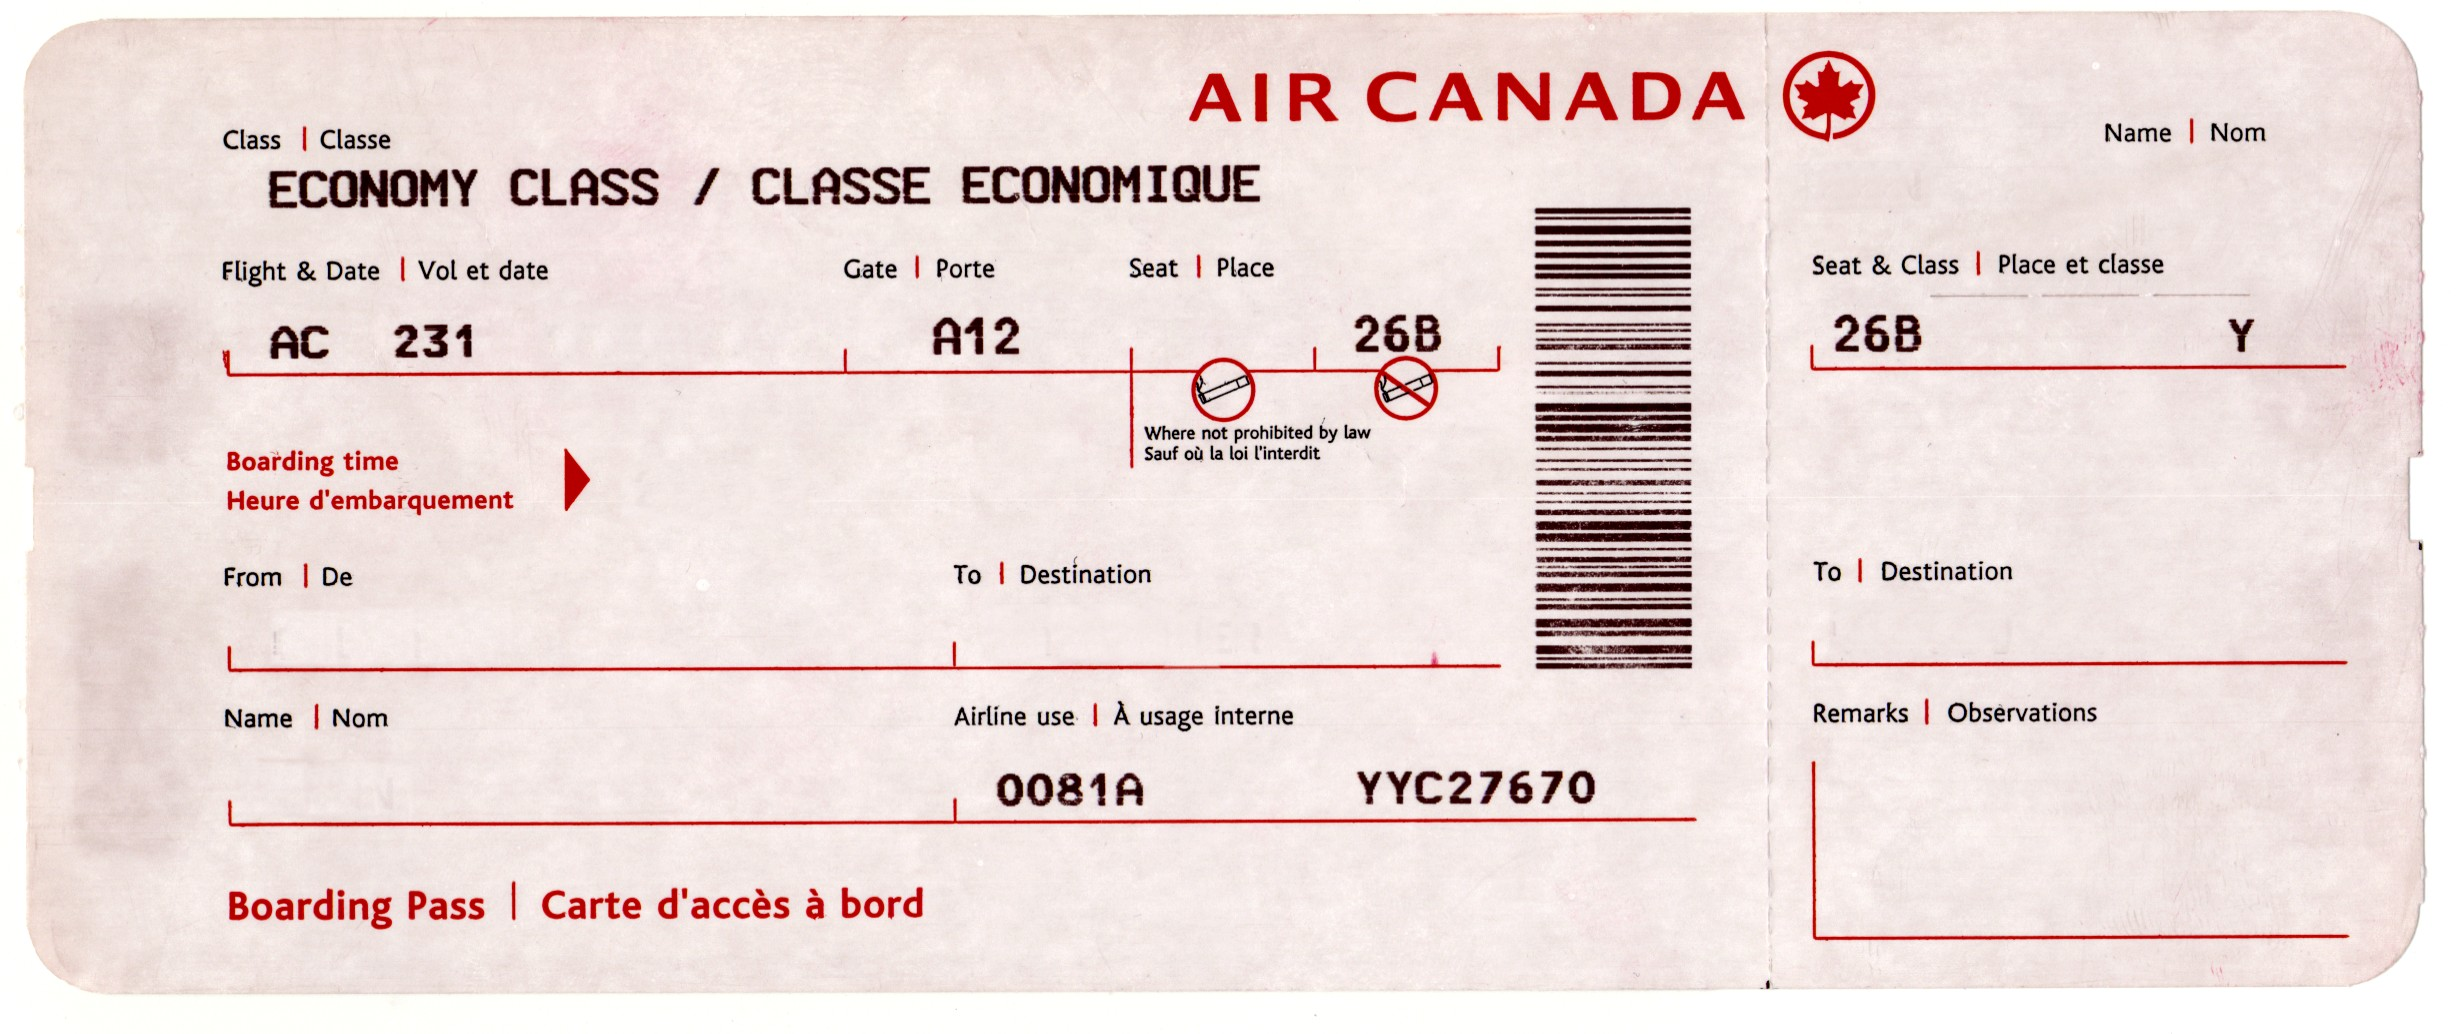 pretend plane ticket template - a blank boarding card airplane ticket jason dunn